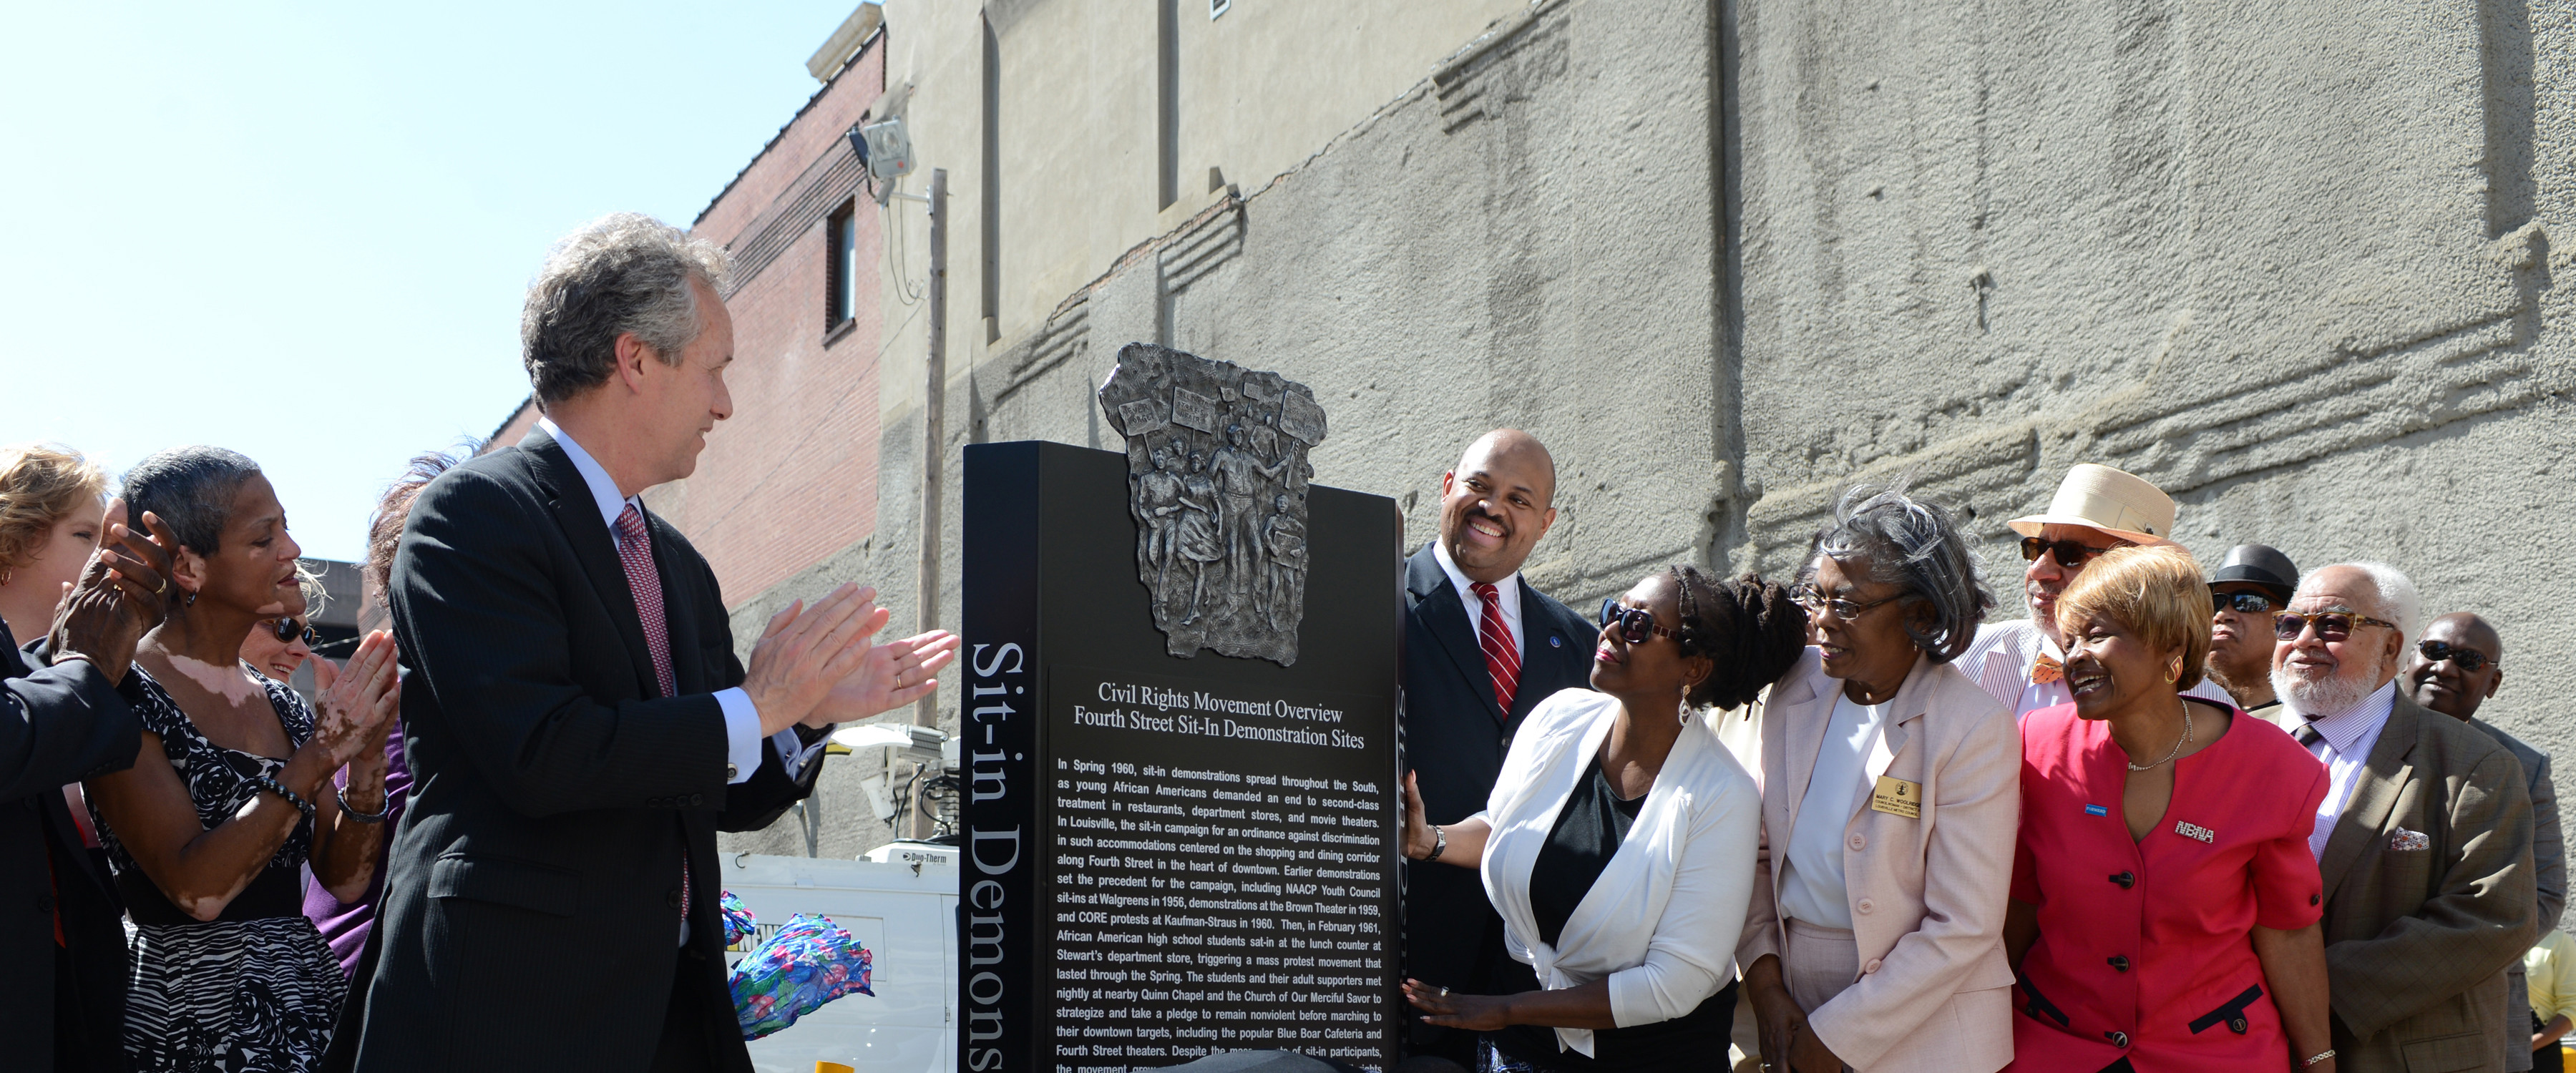 UofL helps mark civil rights history, May 15, 2013